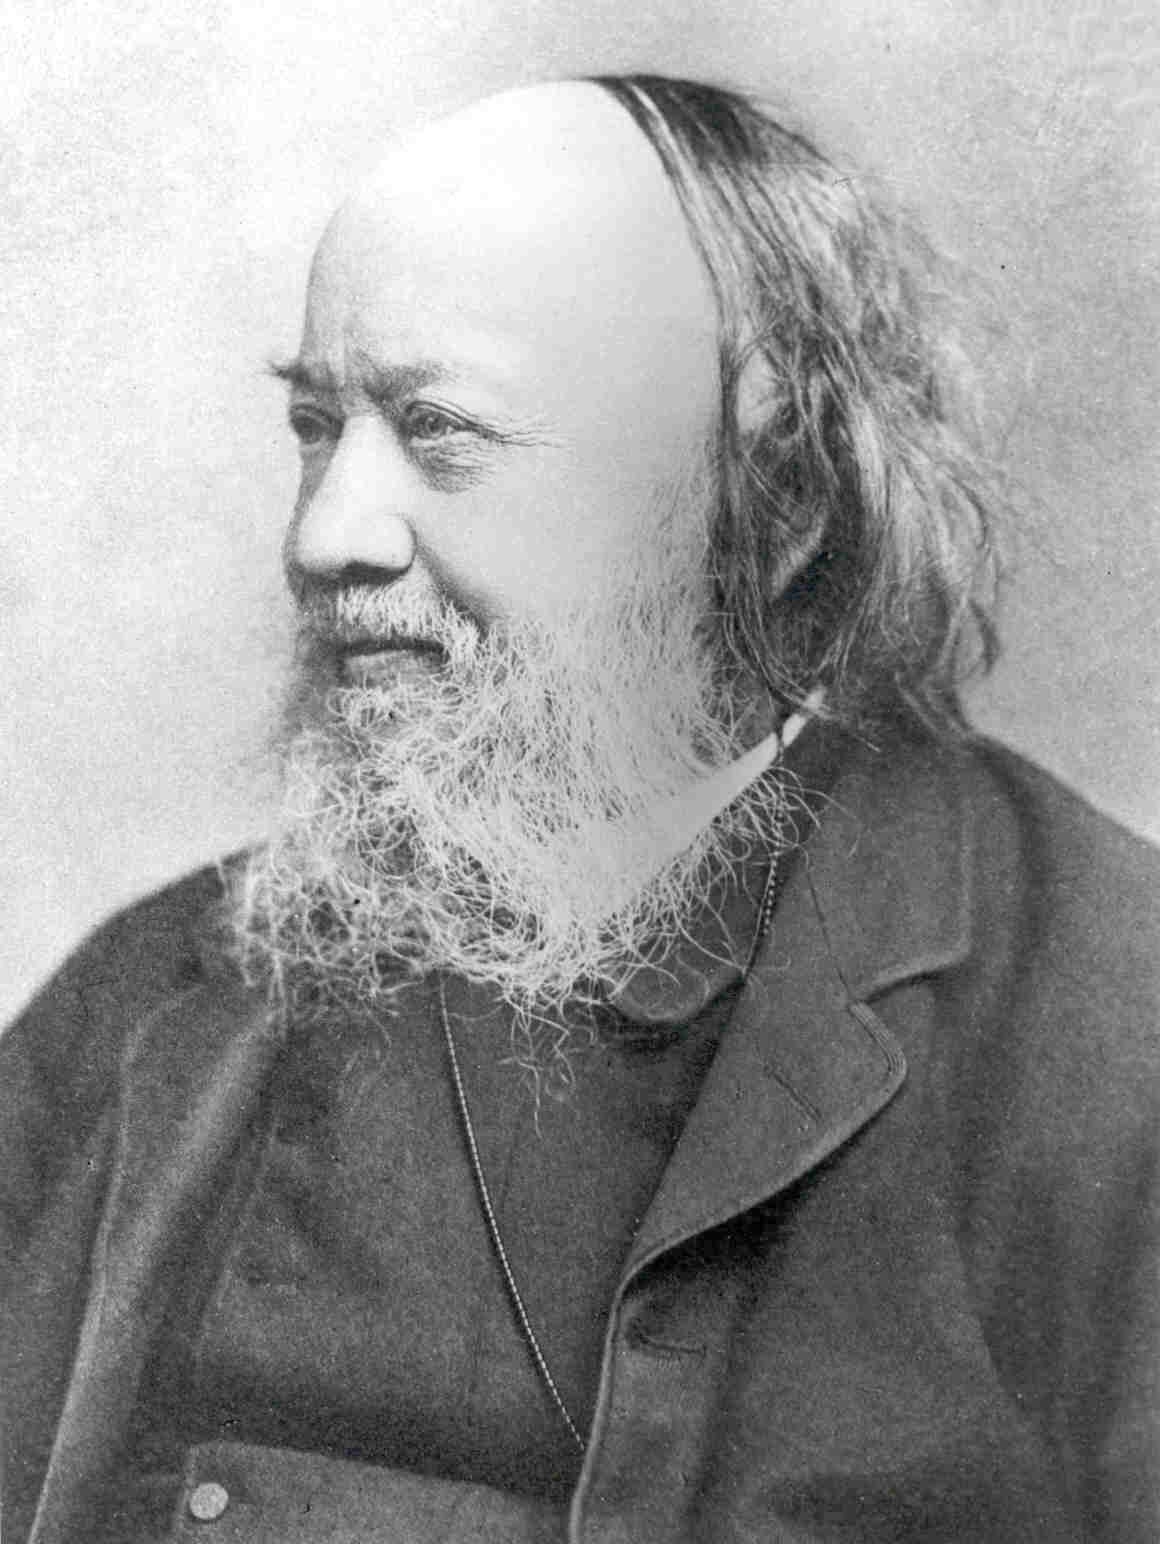 Infighting between Edwin Chadwick and other Poor Law Commissioners was one reason for an overhaul of Poor Law administration.